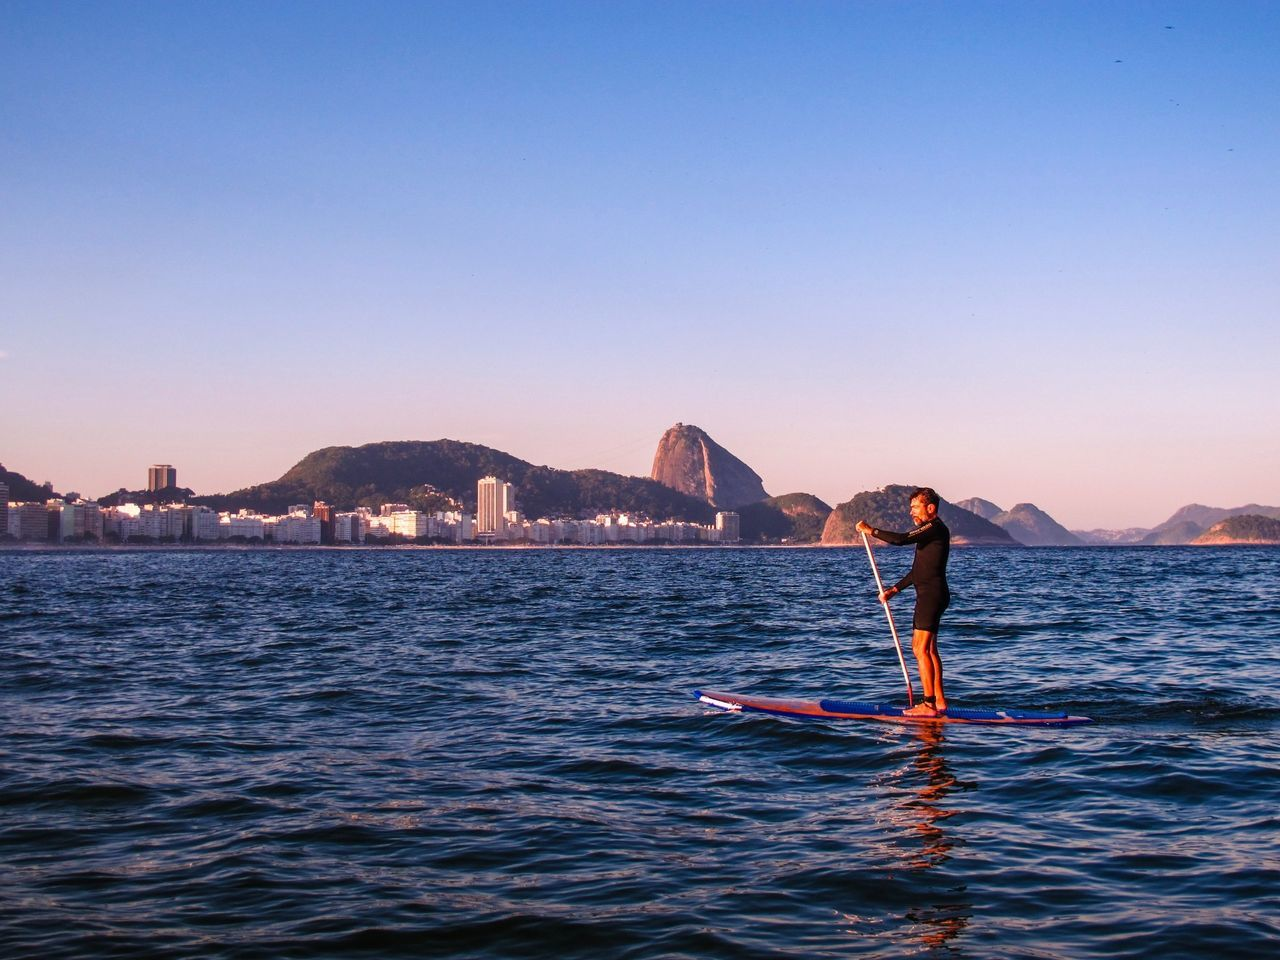 Full Length Of Man Paddleboarding In Sea Against Clear Sky